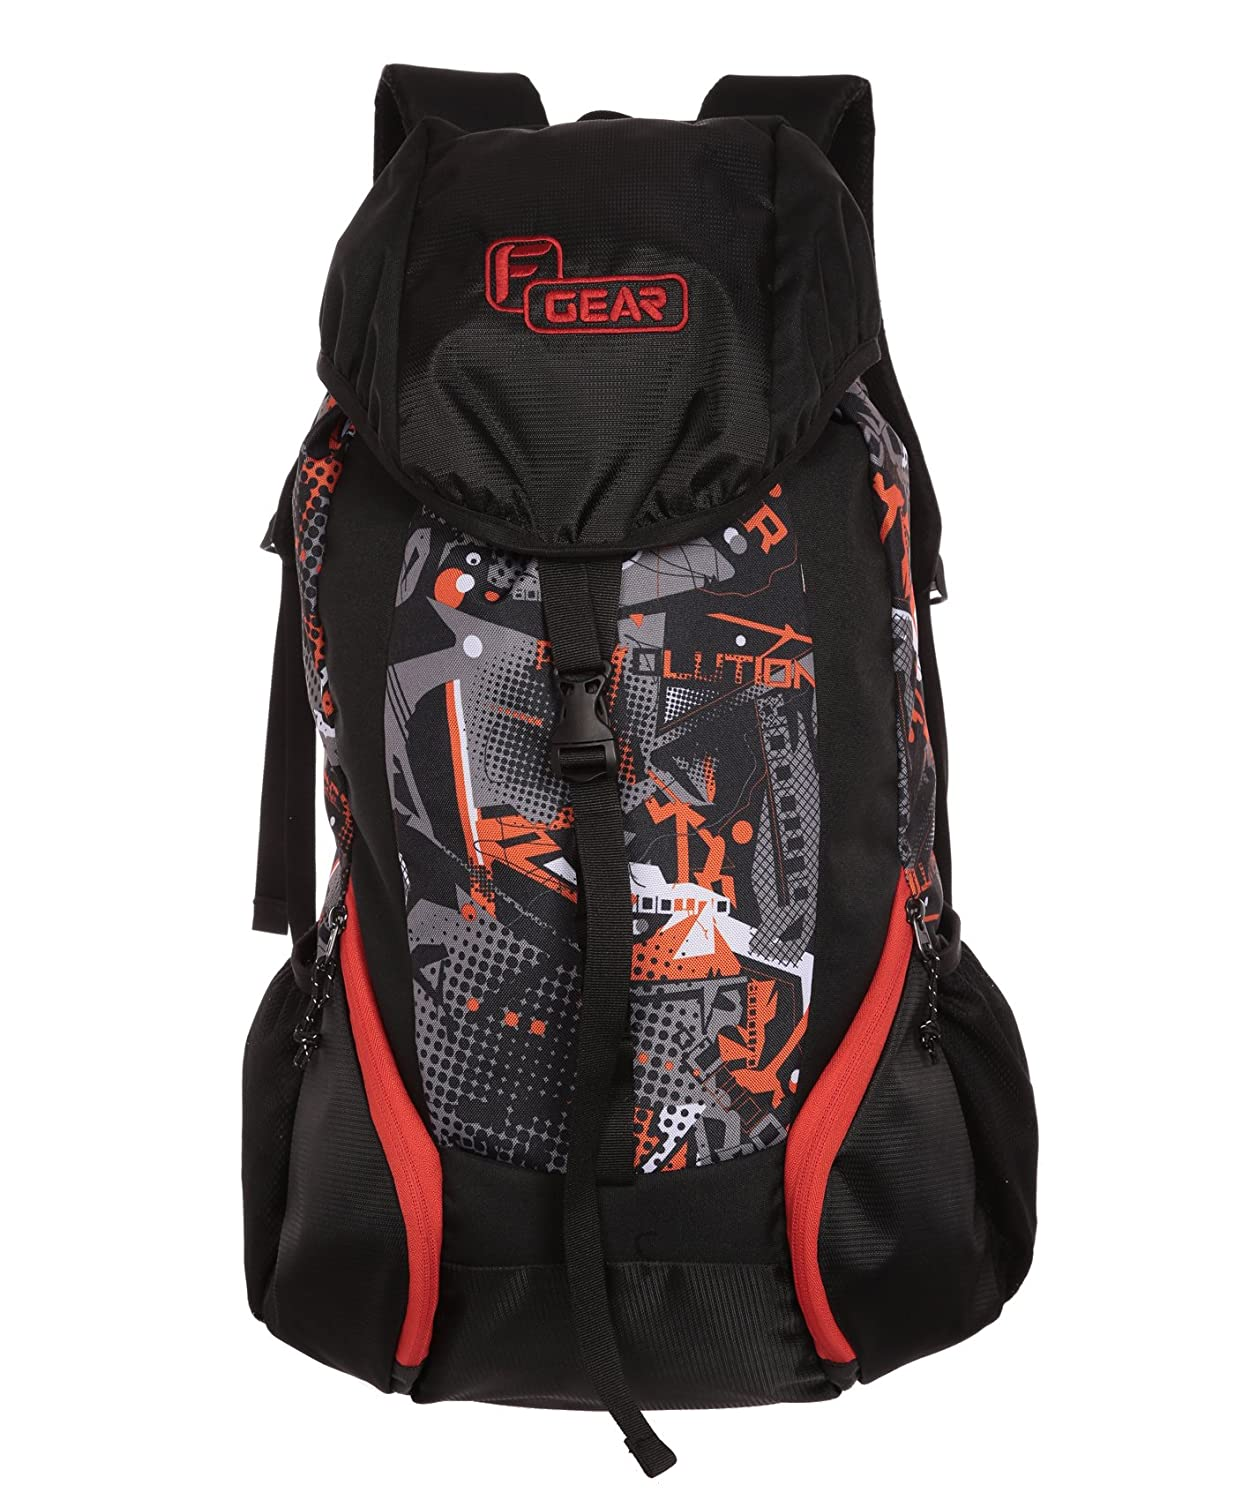 F Gear Trekker 34 Liters (Orange, Grey) Rucksack